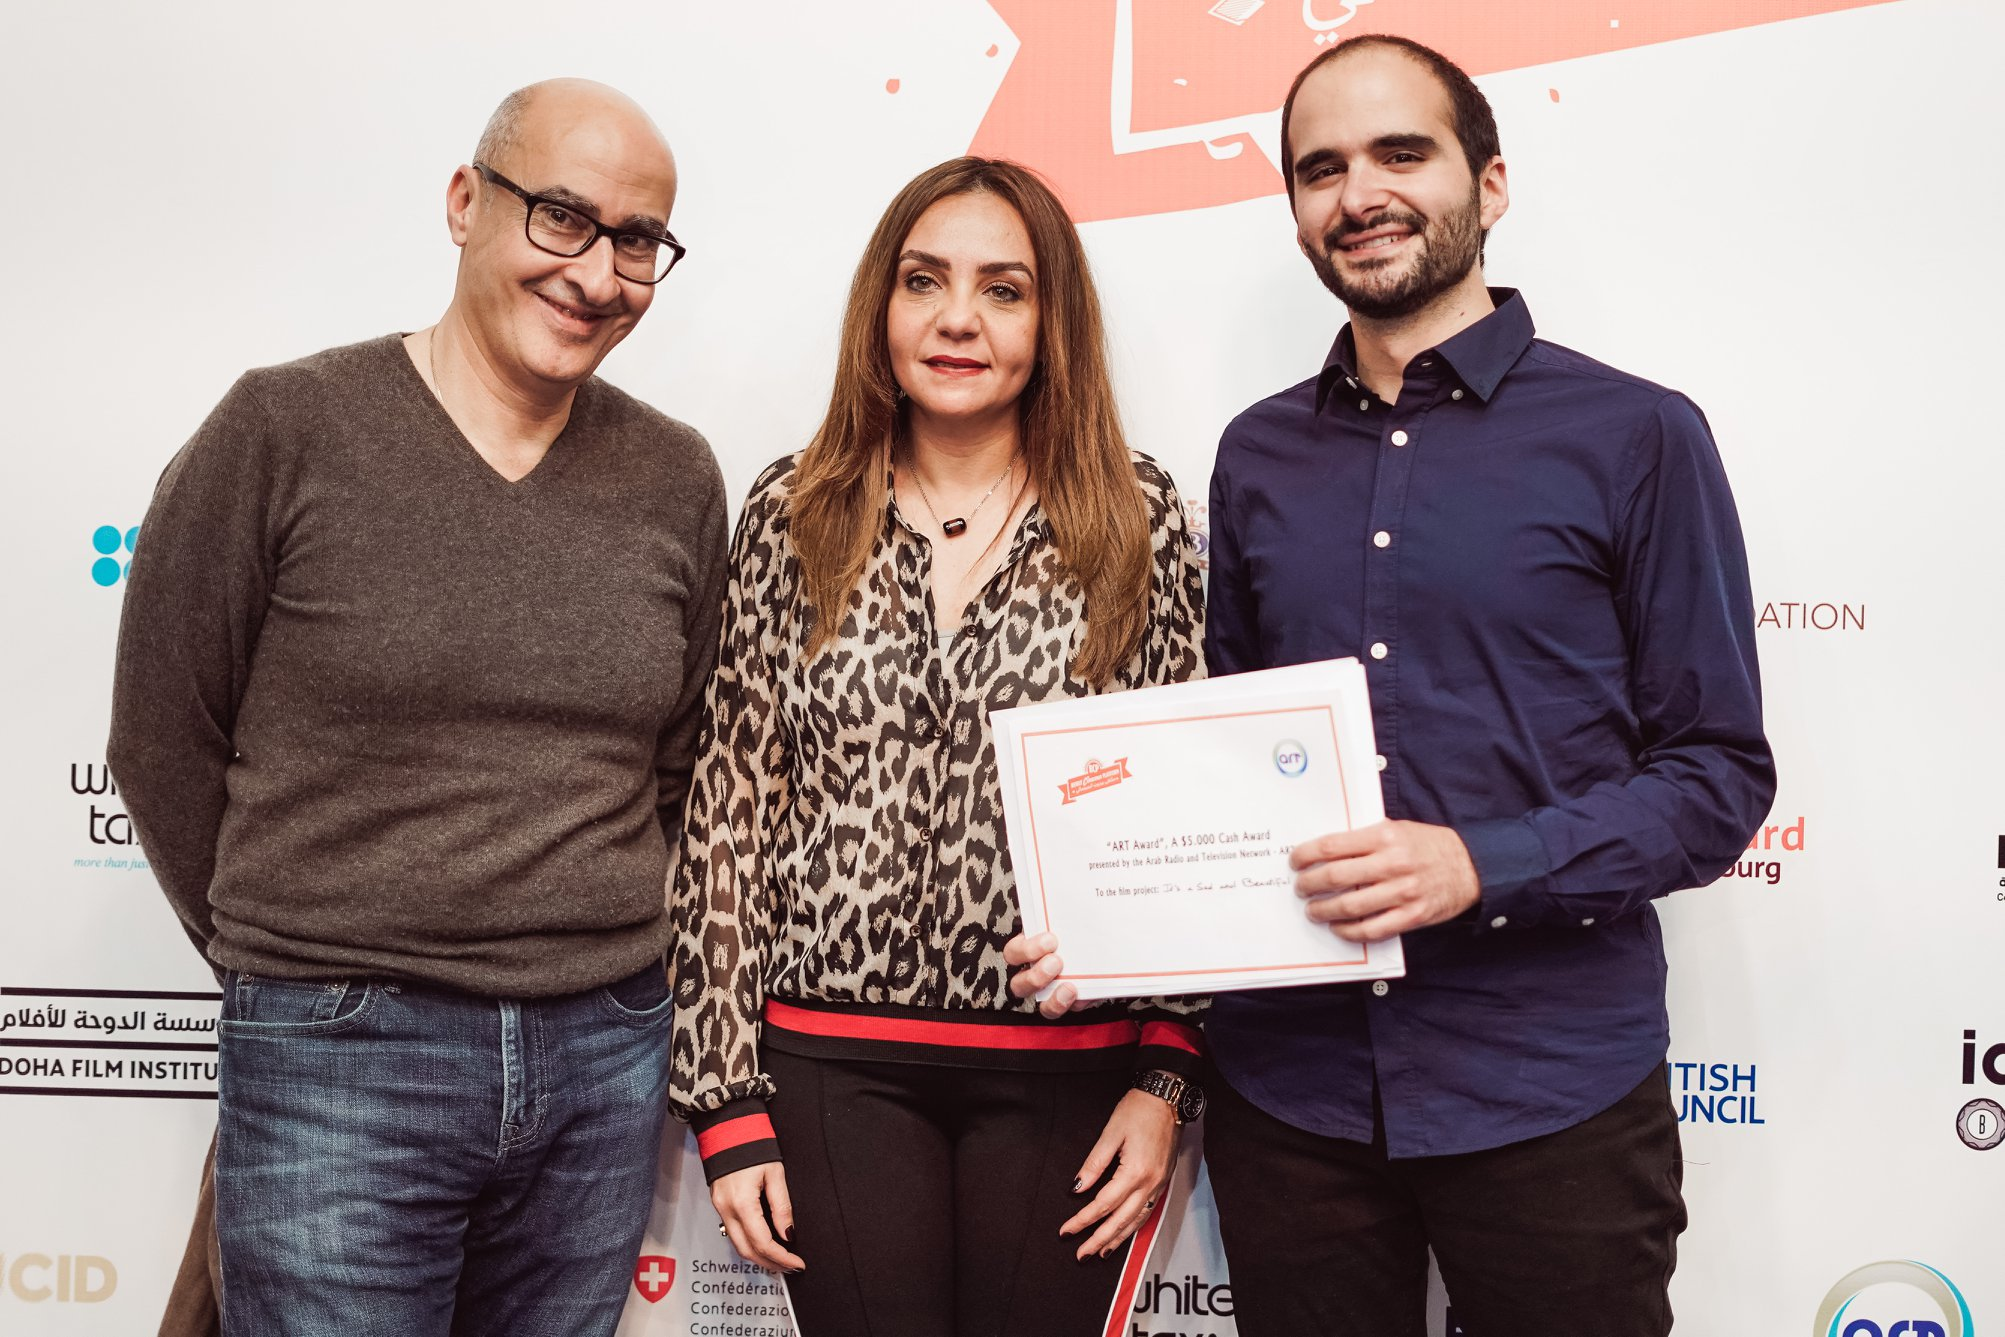 It's a Sad and Beautiful World , winner of the ART award at the 4th Beirut Cinema Platform